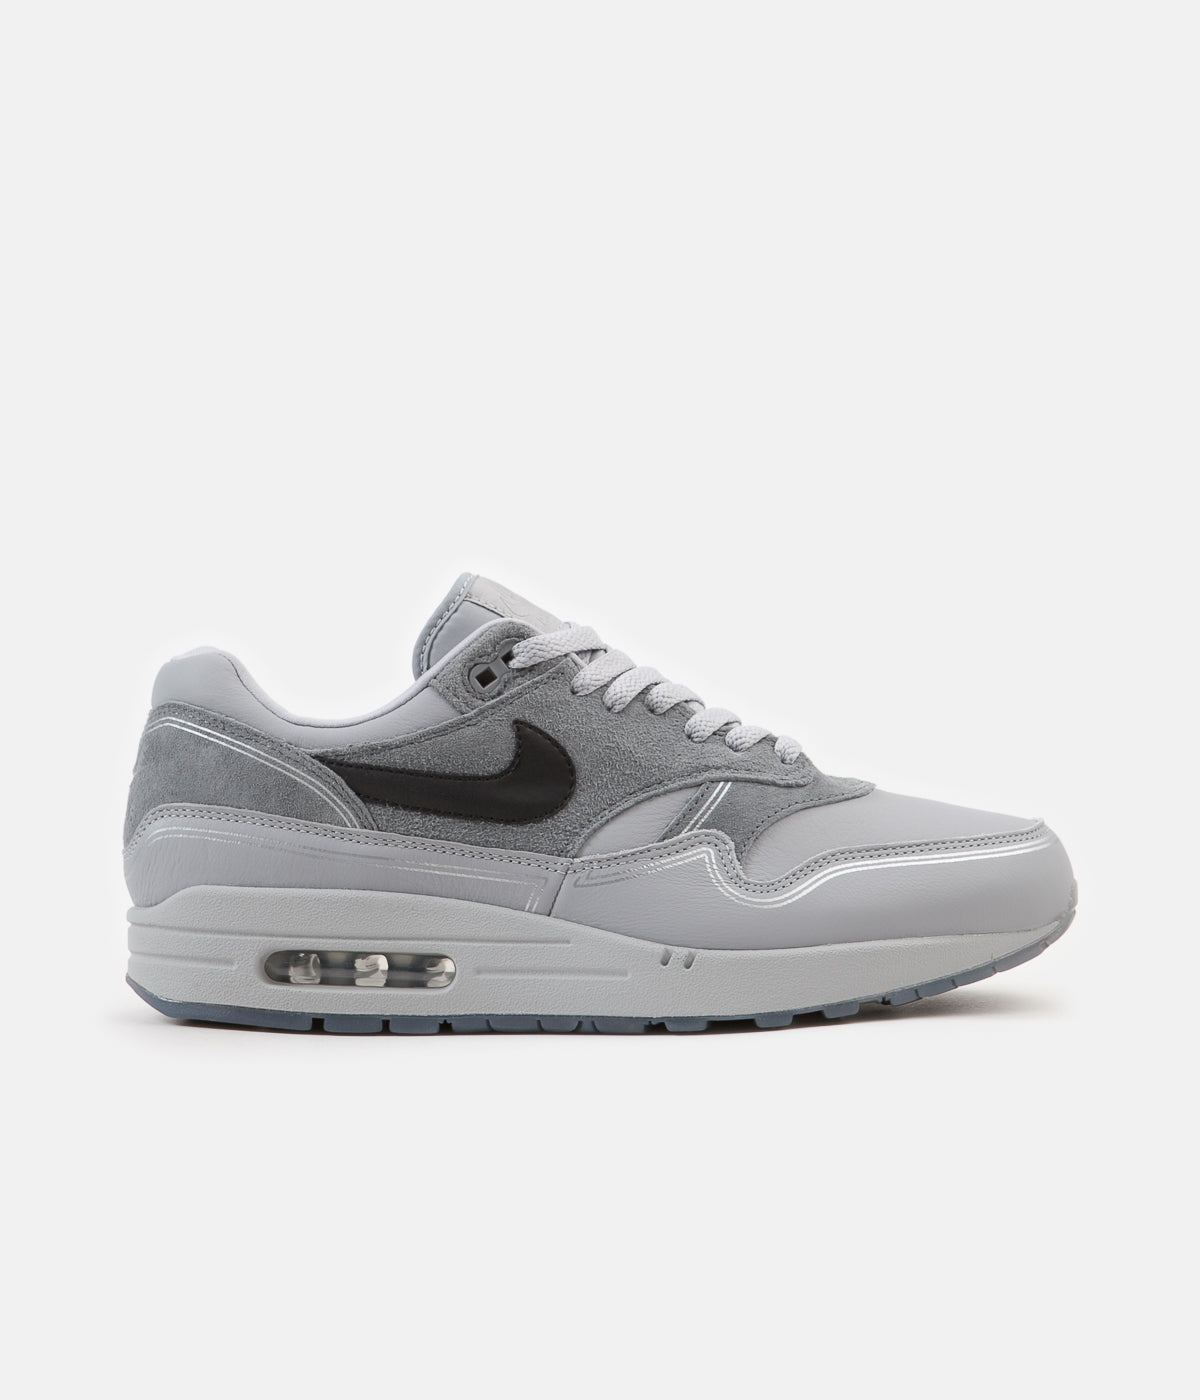 sale retailer 8ff4e c254a Nike Air Max 1 Centre Pompidou Shoes - Wolf Grey   Black - Cool Grey ...